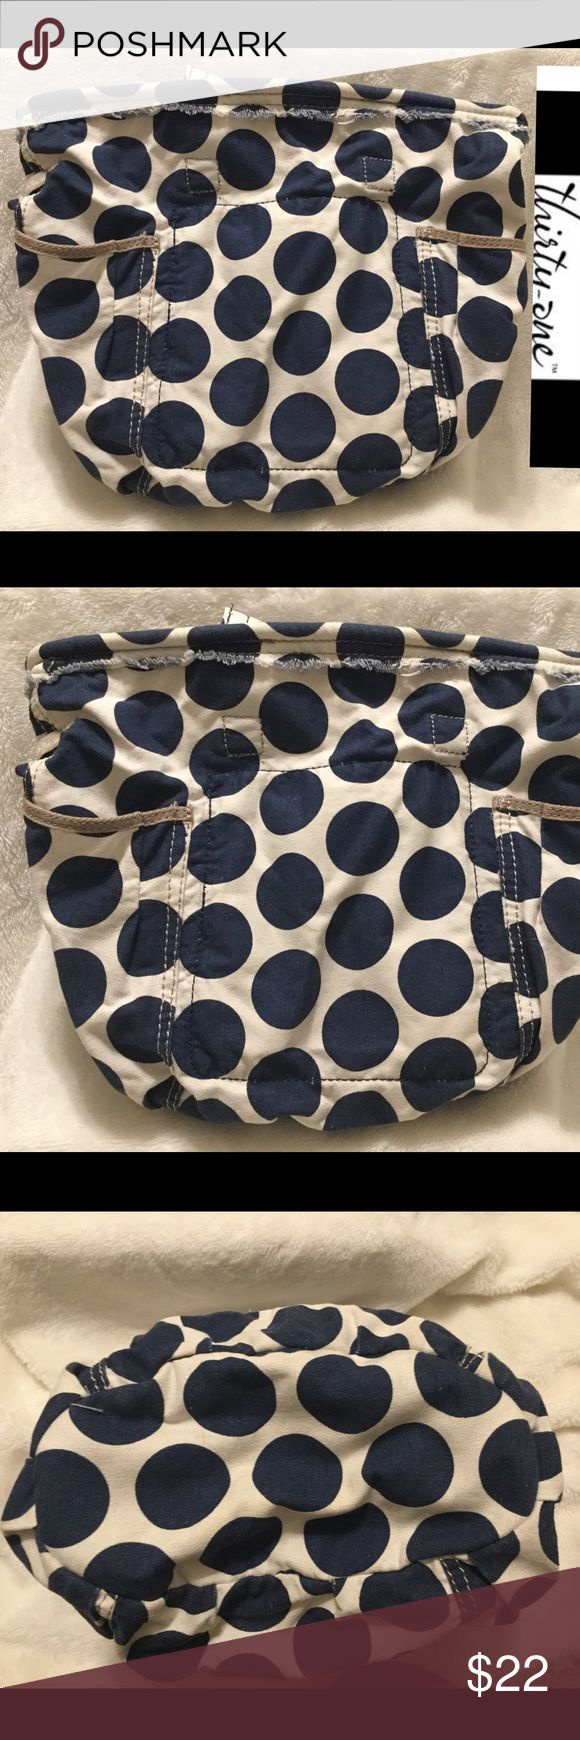 Thirty One bag retro metro navy polkadot exc. cond This bag is in excellent condition with no rips tears stains or discoloration and comes from a smoke free home.  Buy with confidence I am a top rated seller, mentor and fast shipper.  Don't forget to bundle and save.  Thank you. Thirty One Bags Totes